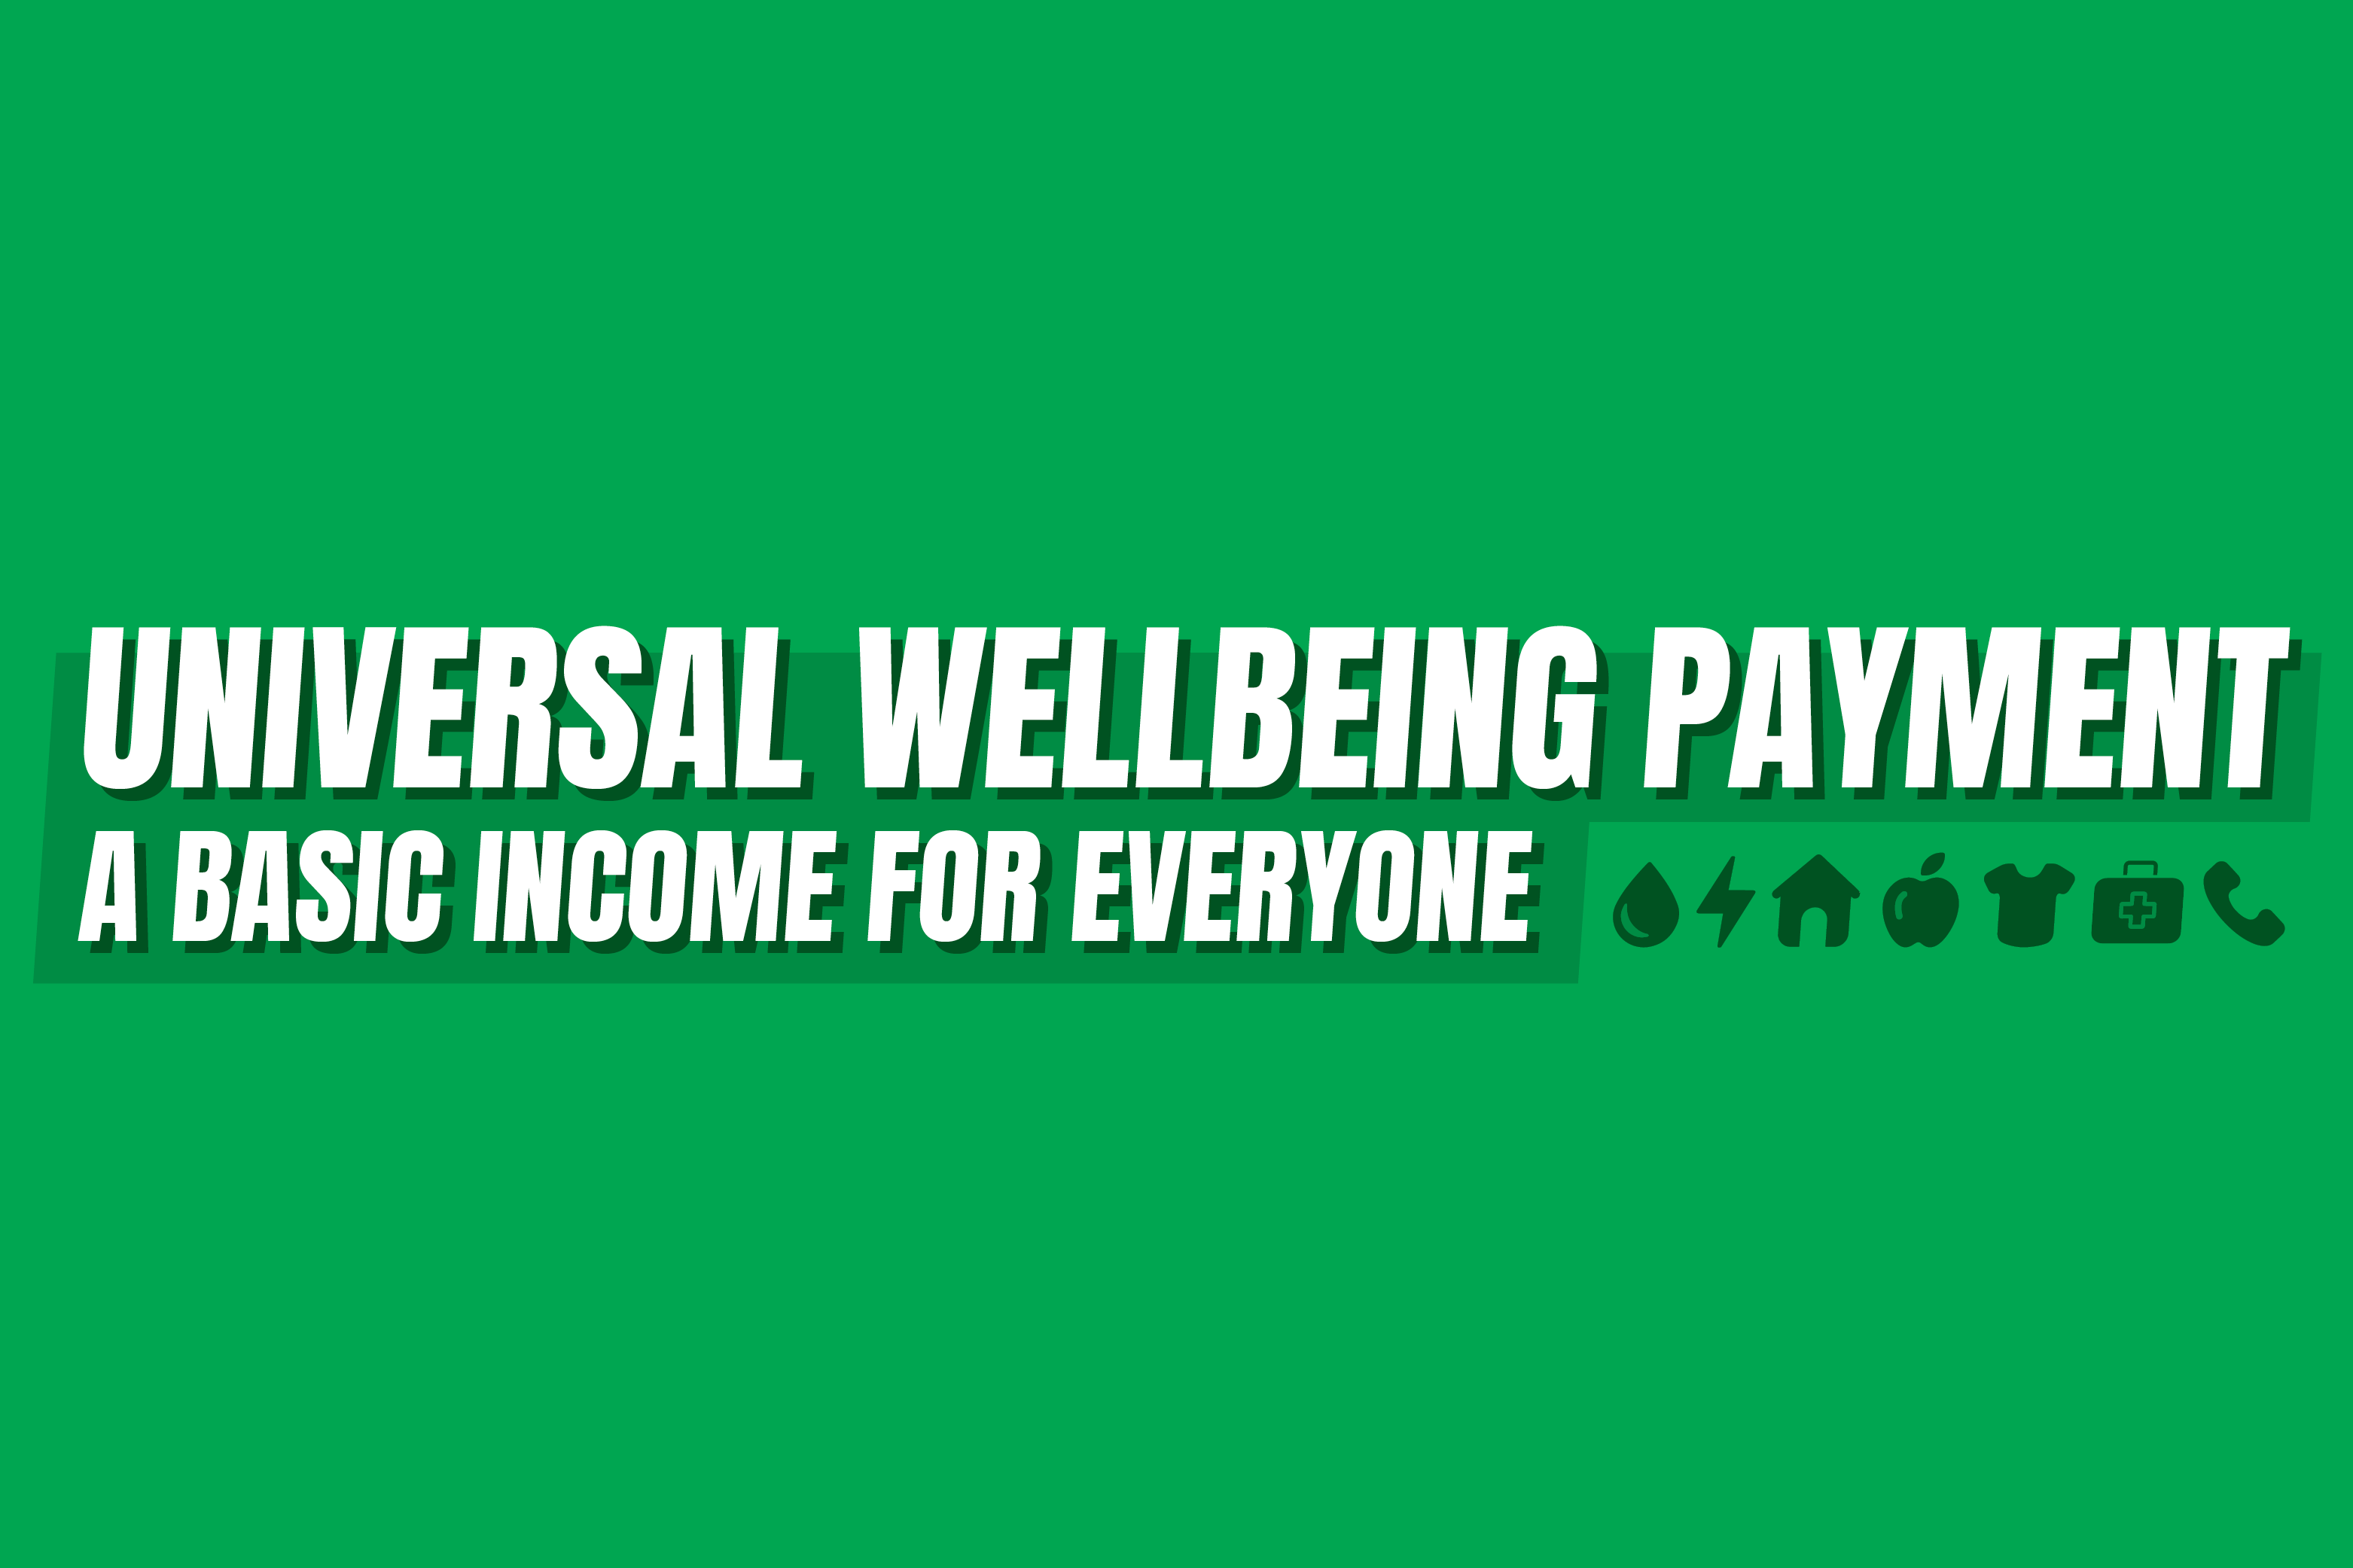 Universal Wellbeing Payment Petition – Abigail Boyd